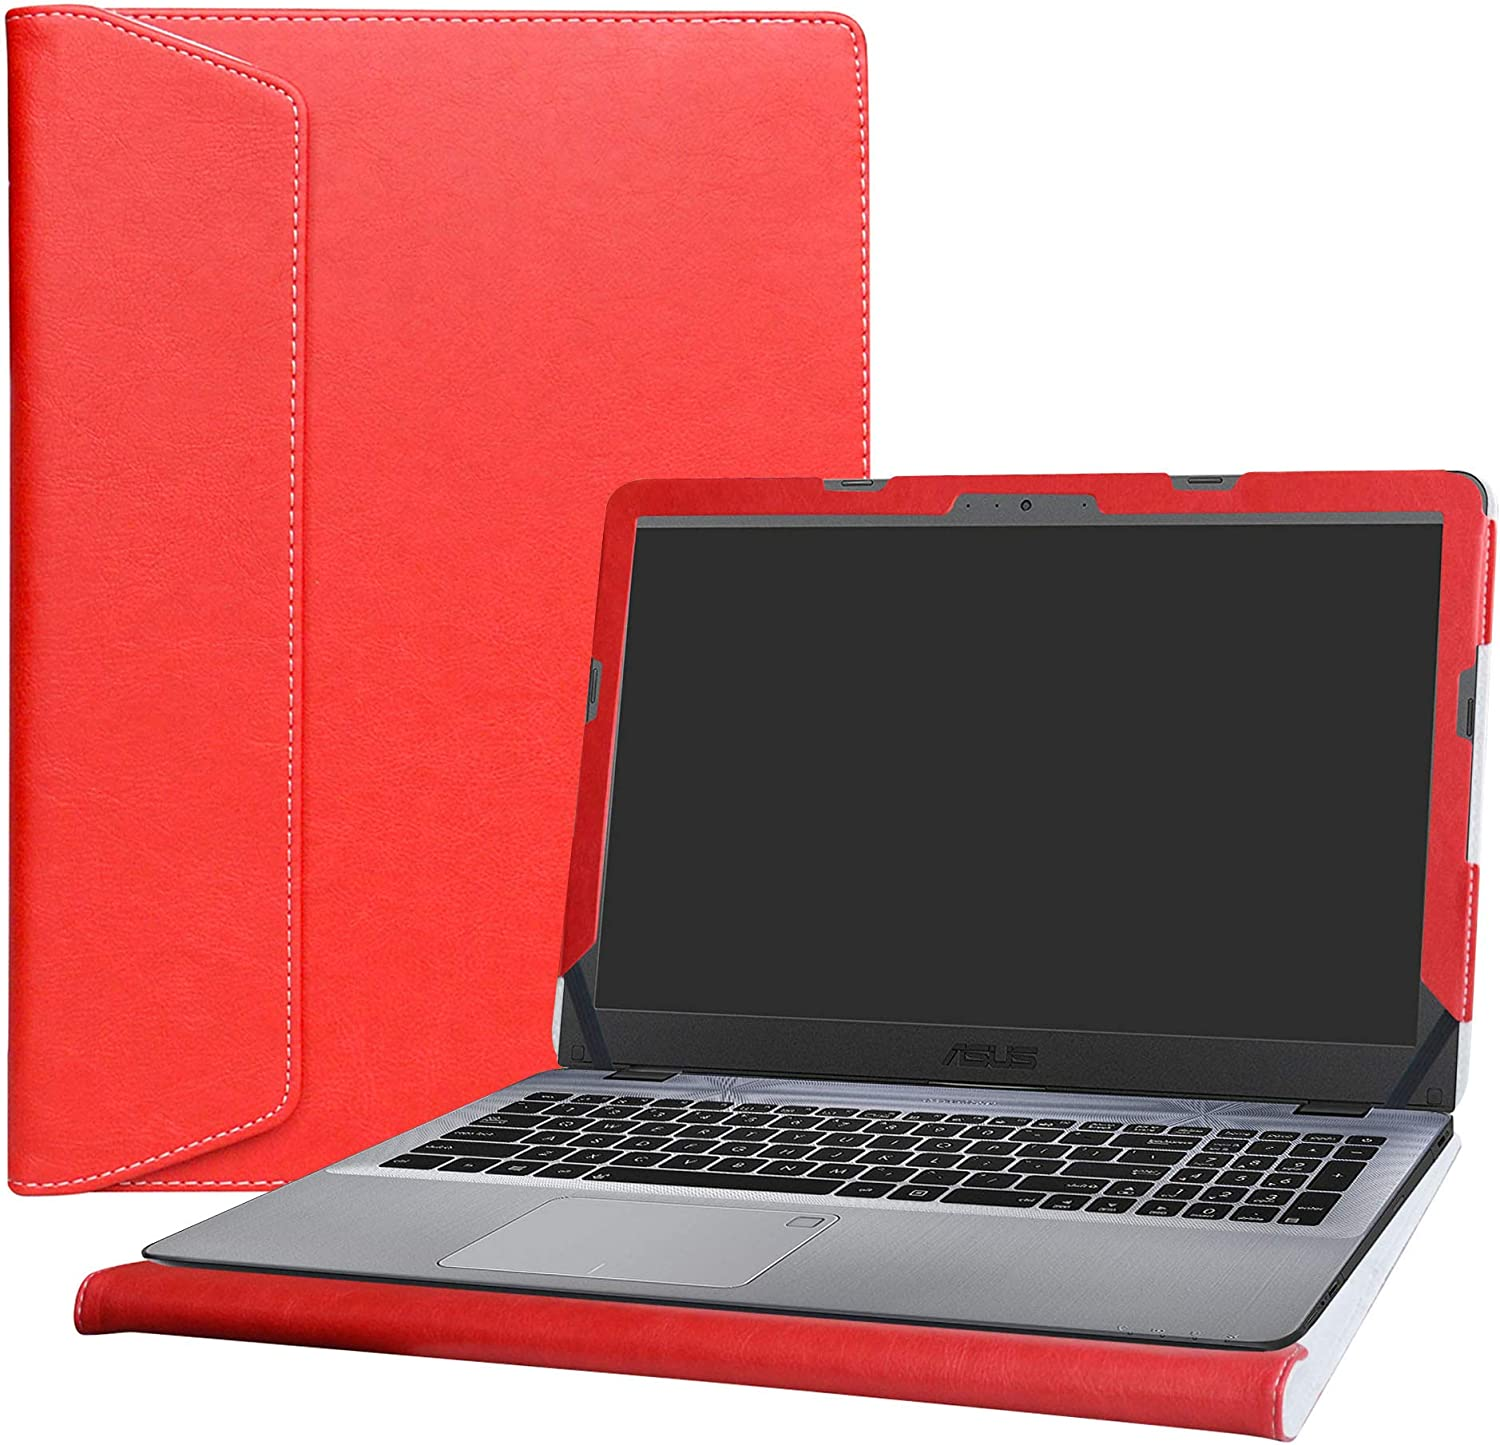 """Alapmk Protective Case Cover for 15.6"""" ASUS VivoBook Max X540 X540SA X540LA X541 X541SA X541NA X541UA X542BA Series Laptop(Warning:Not fit Other Model Laptop),Red"""